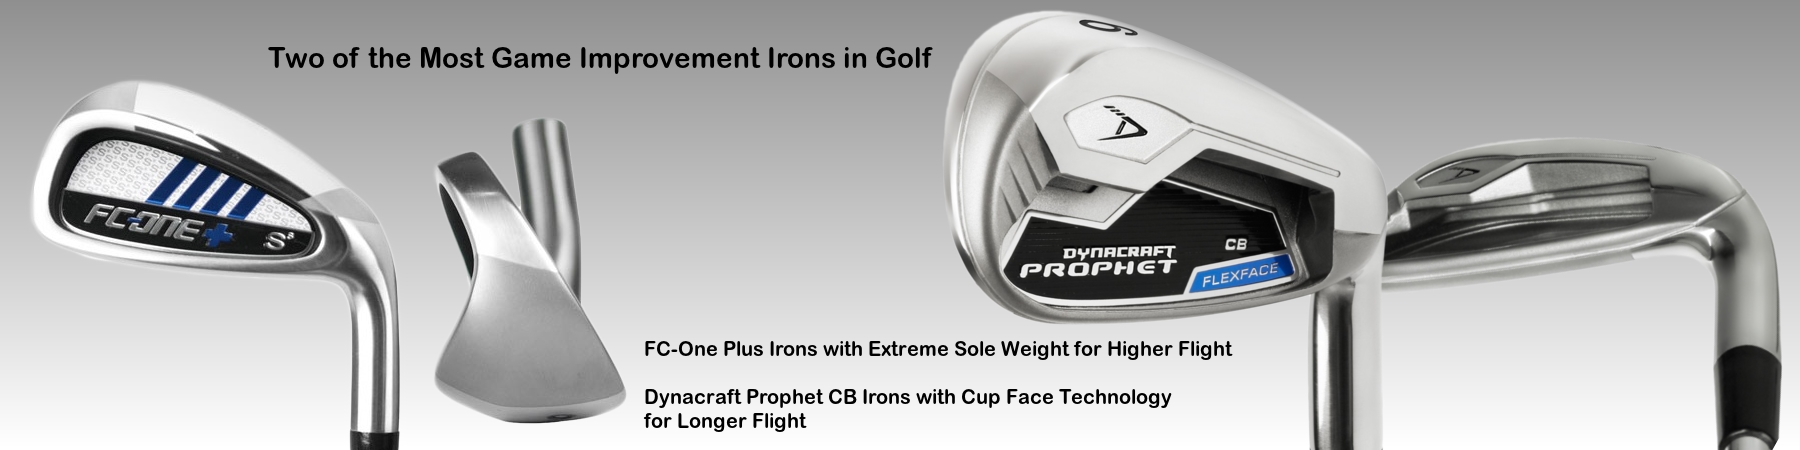 FC-One + Irons and Prophet CB Irons